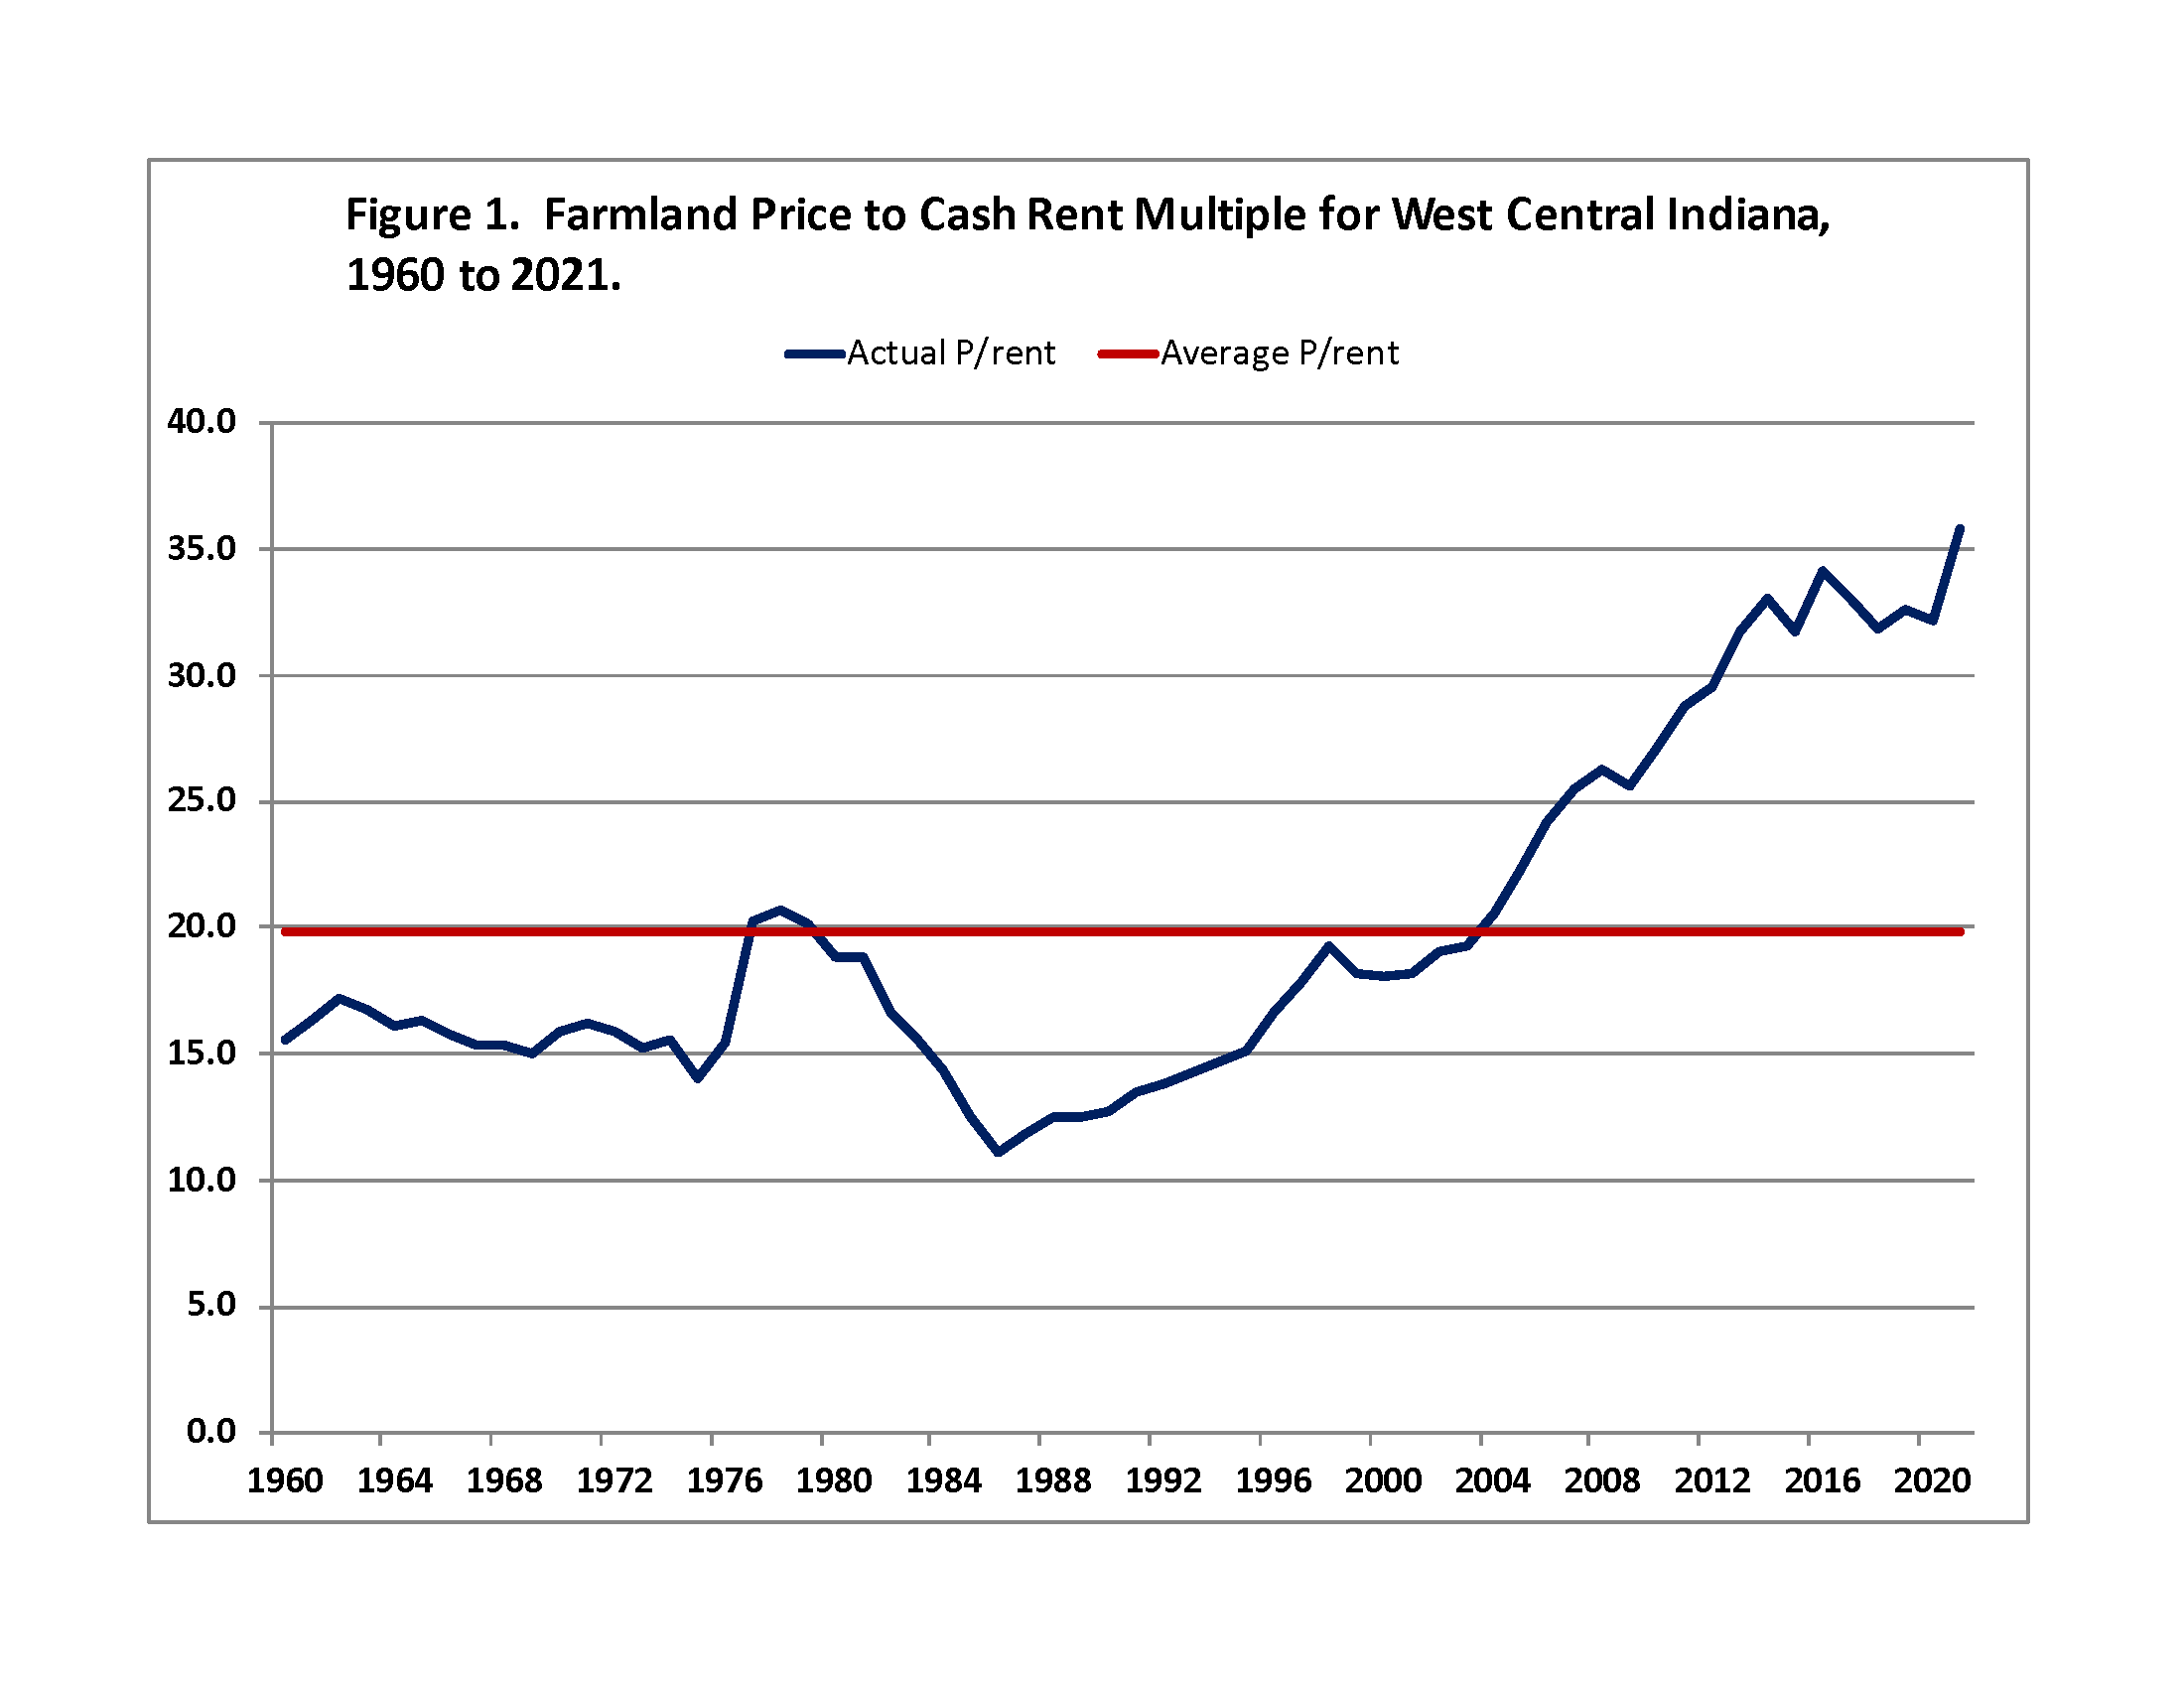 Figure 1. Farmland Price to Cash Rent Multiple for West Central Indiana, 1960-2021